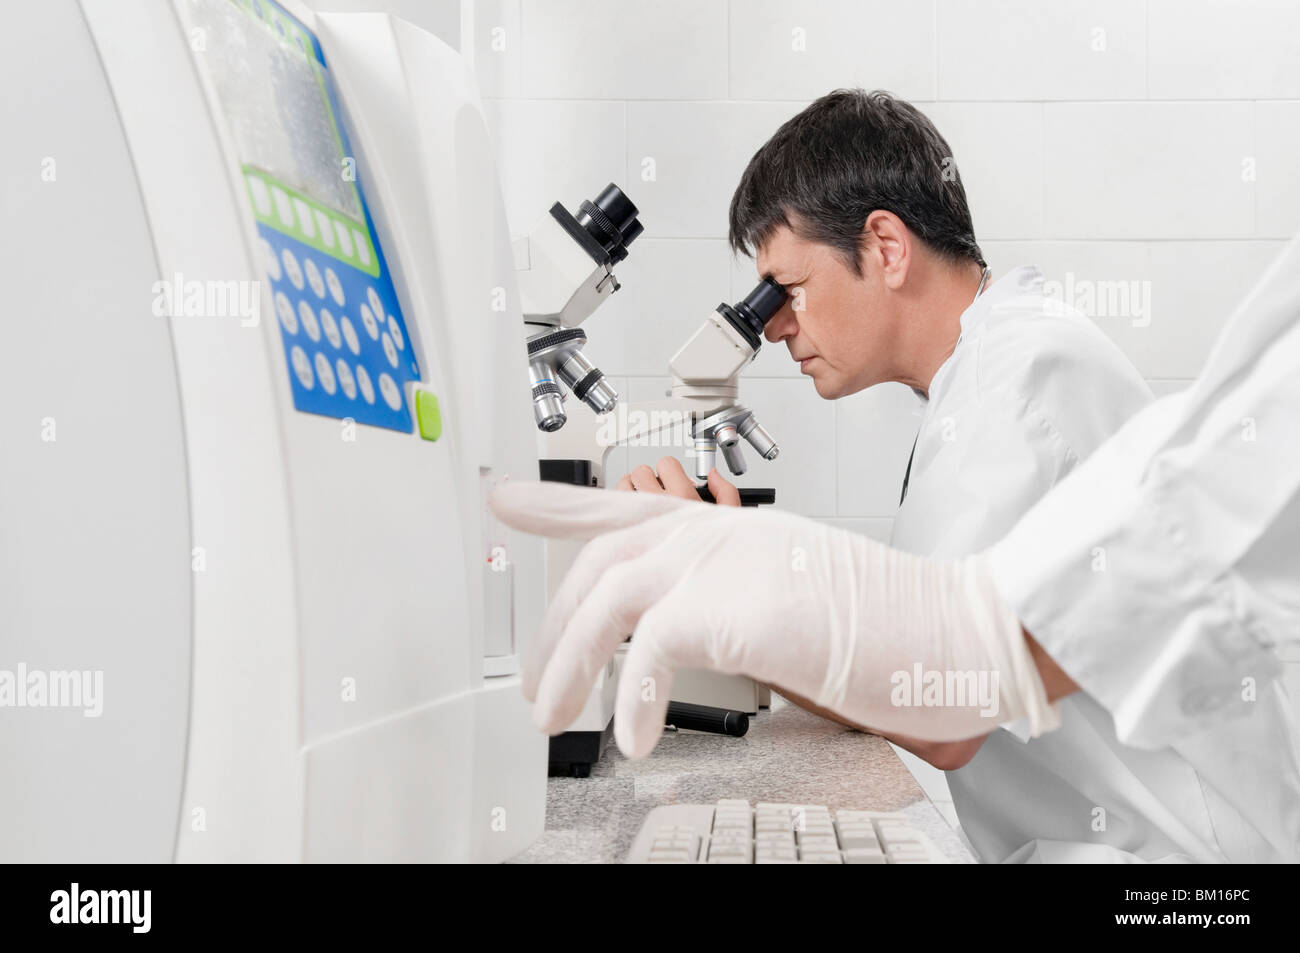 Vet looking into a microscope - Stock Image